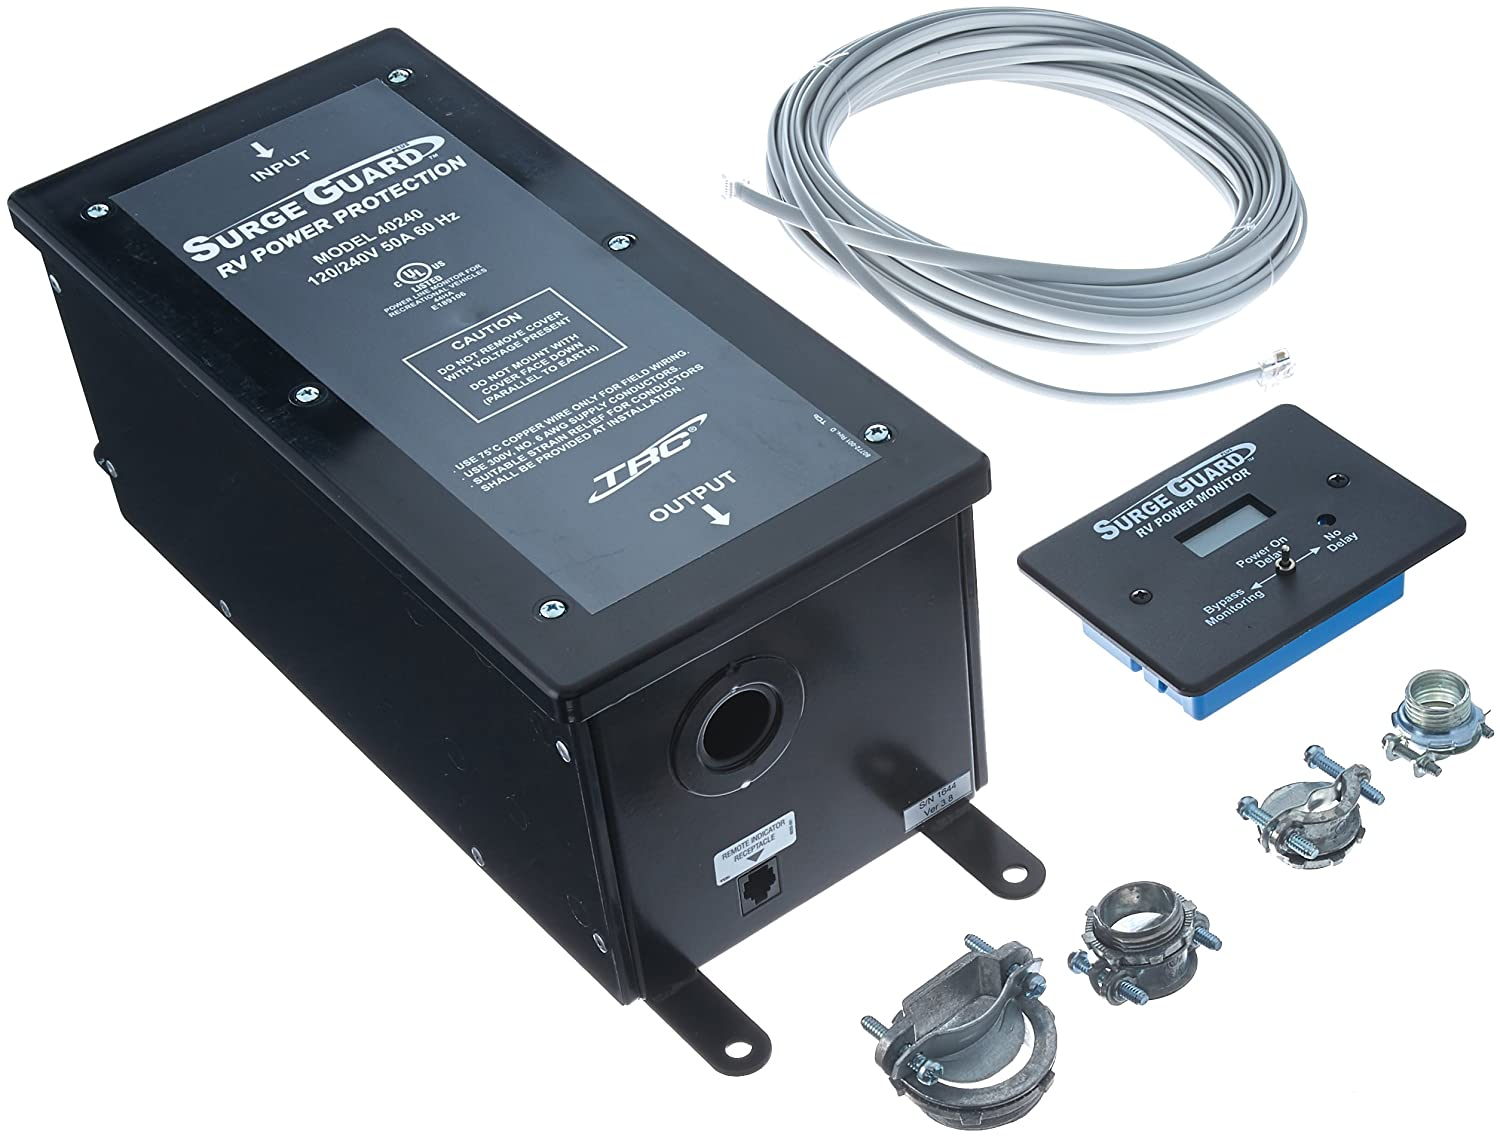 Technology Research 40240 50 Amp Surge Guard with LCD